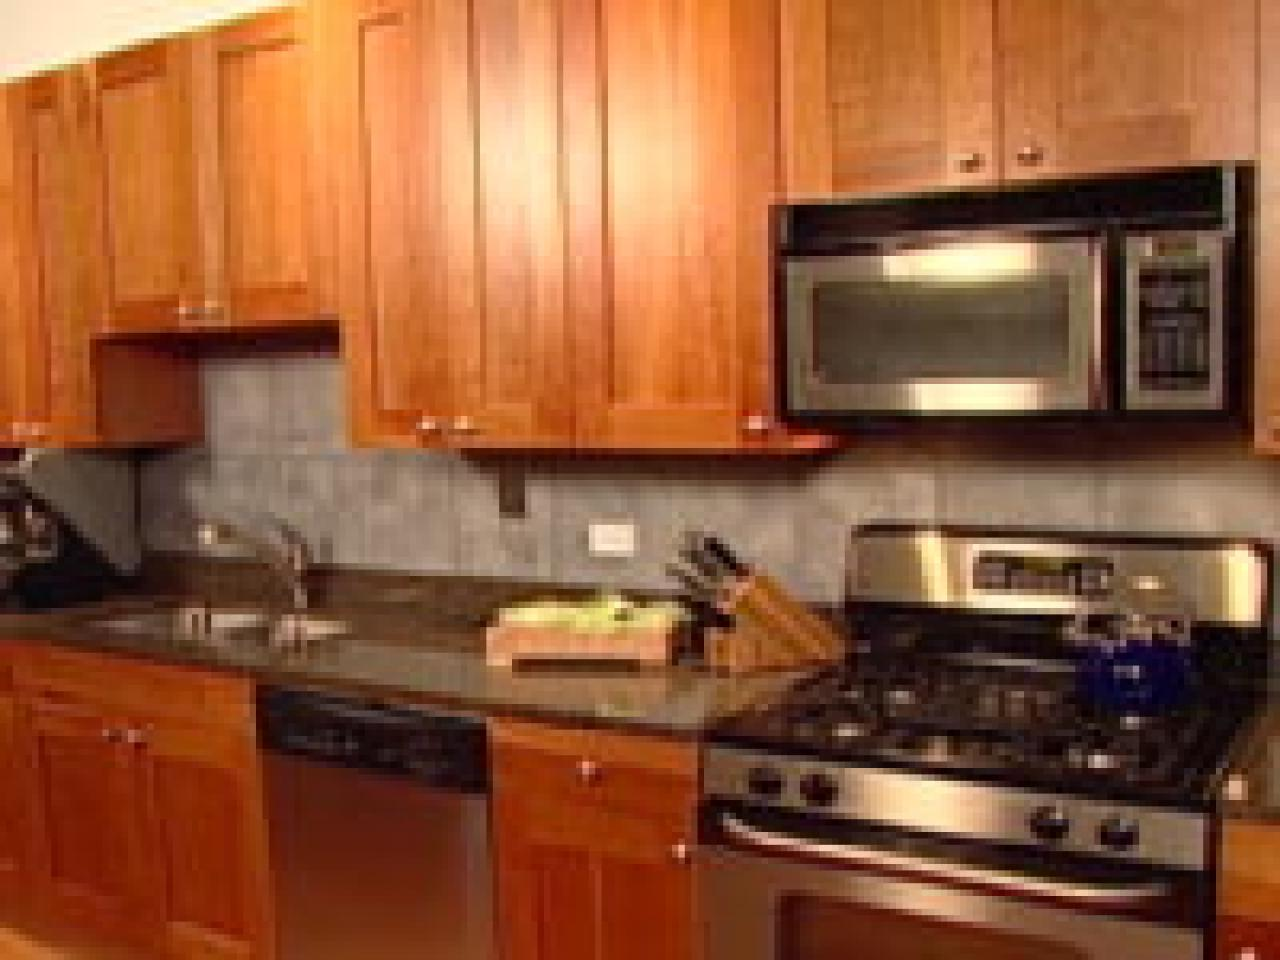 Diy Tile Backsplash Kitchen An Easy Backsplash Made With Vinyl Tile Hgtv